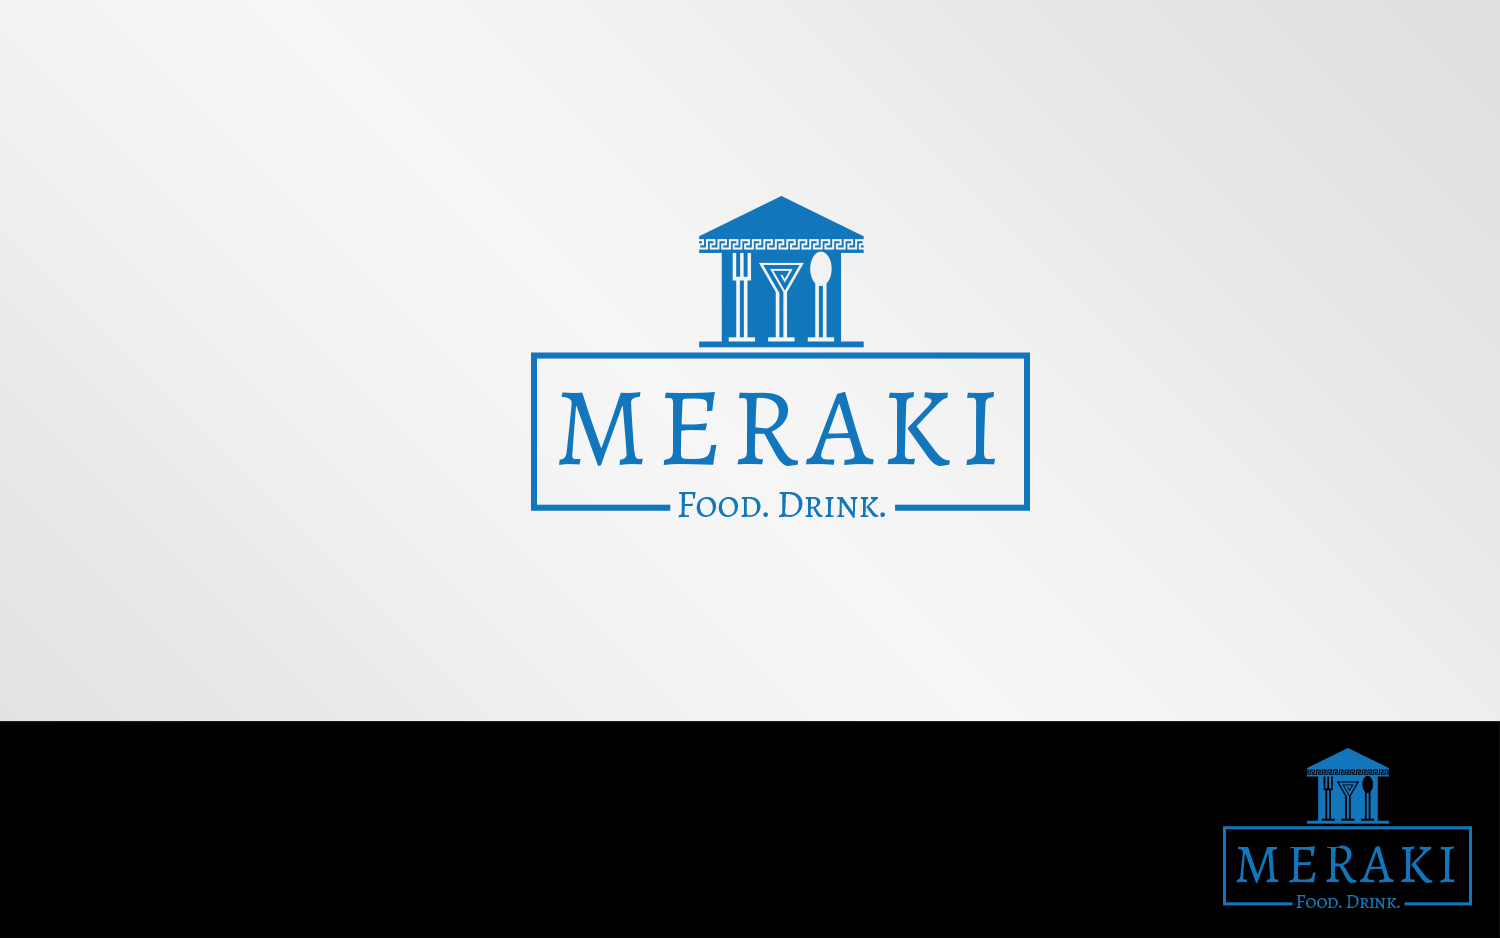 Elegant Playful Greek Restaurant Logo Design For Meraki Food Drink Greek Style By Grafactory Design 20338476